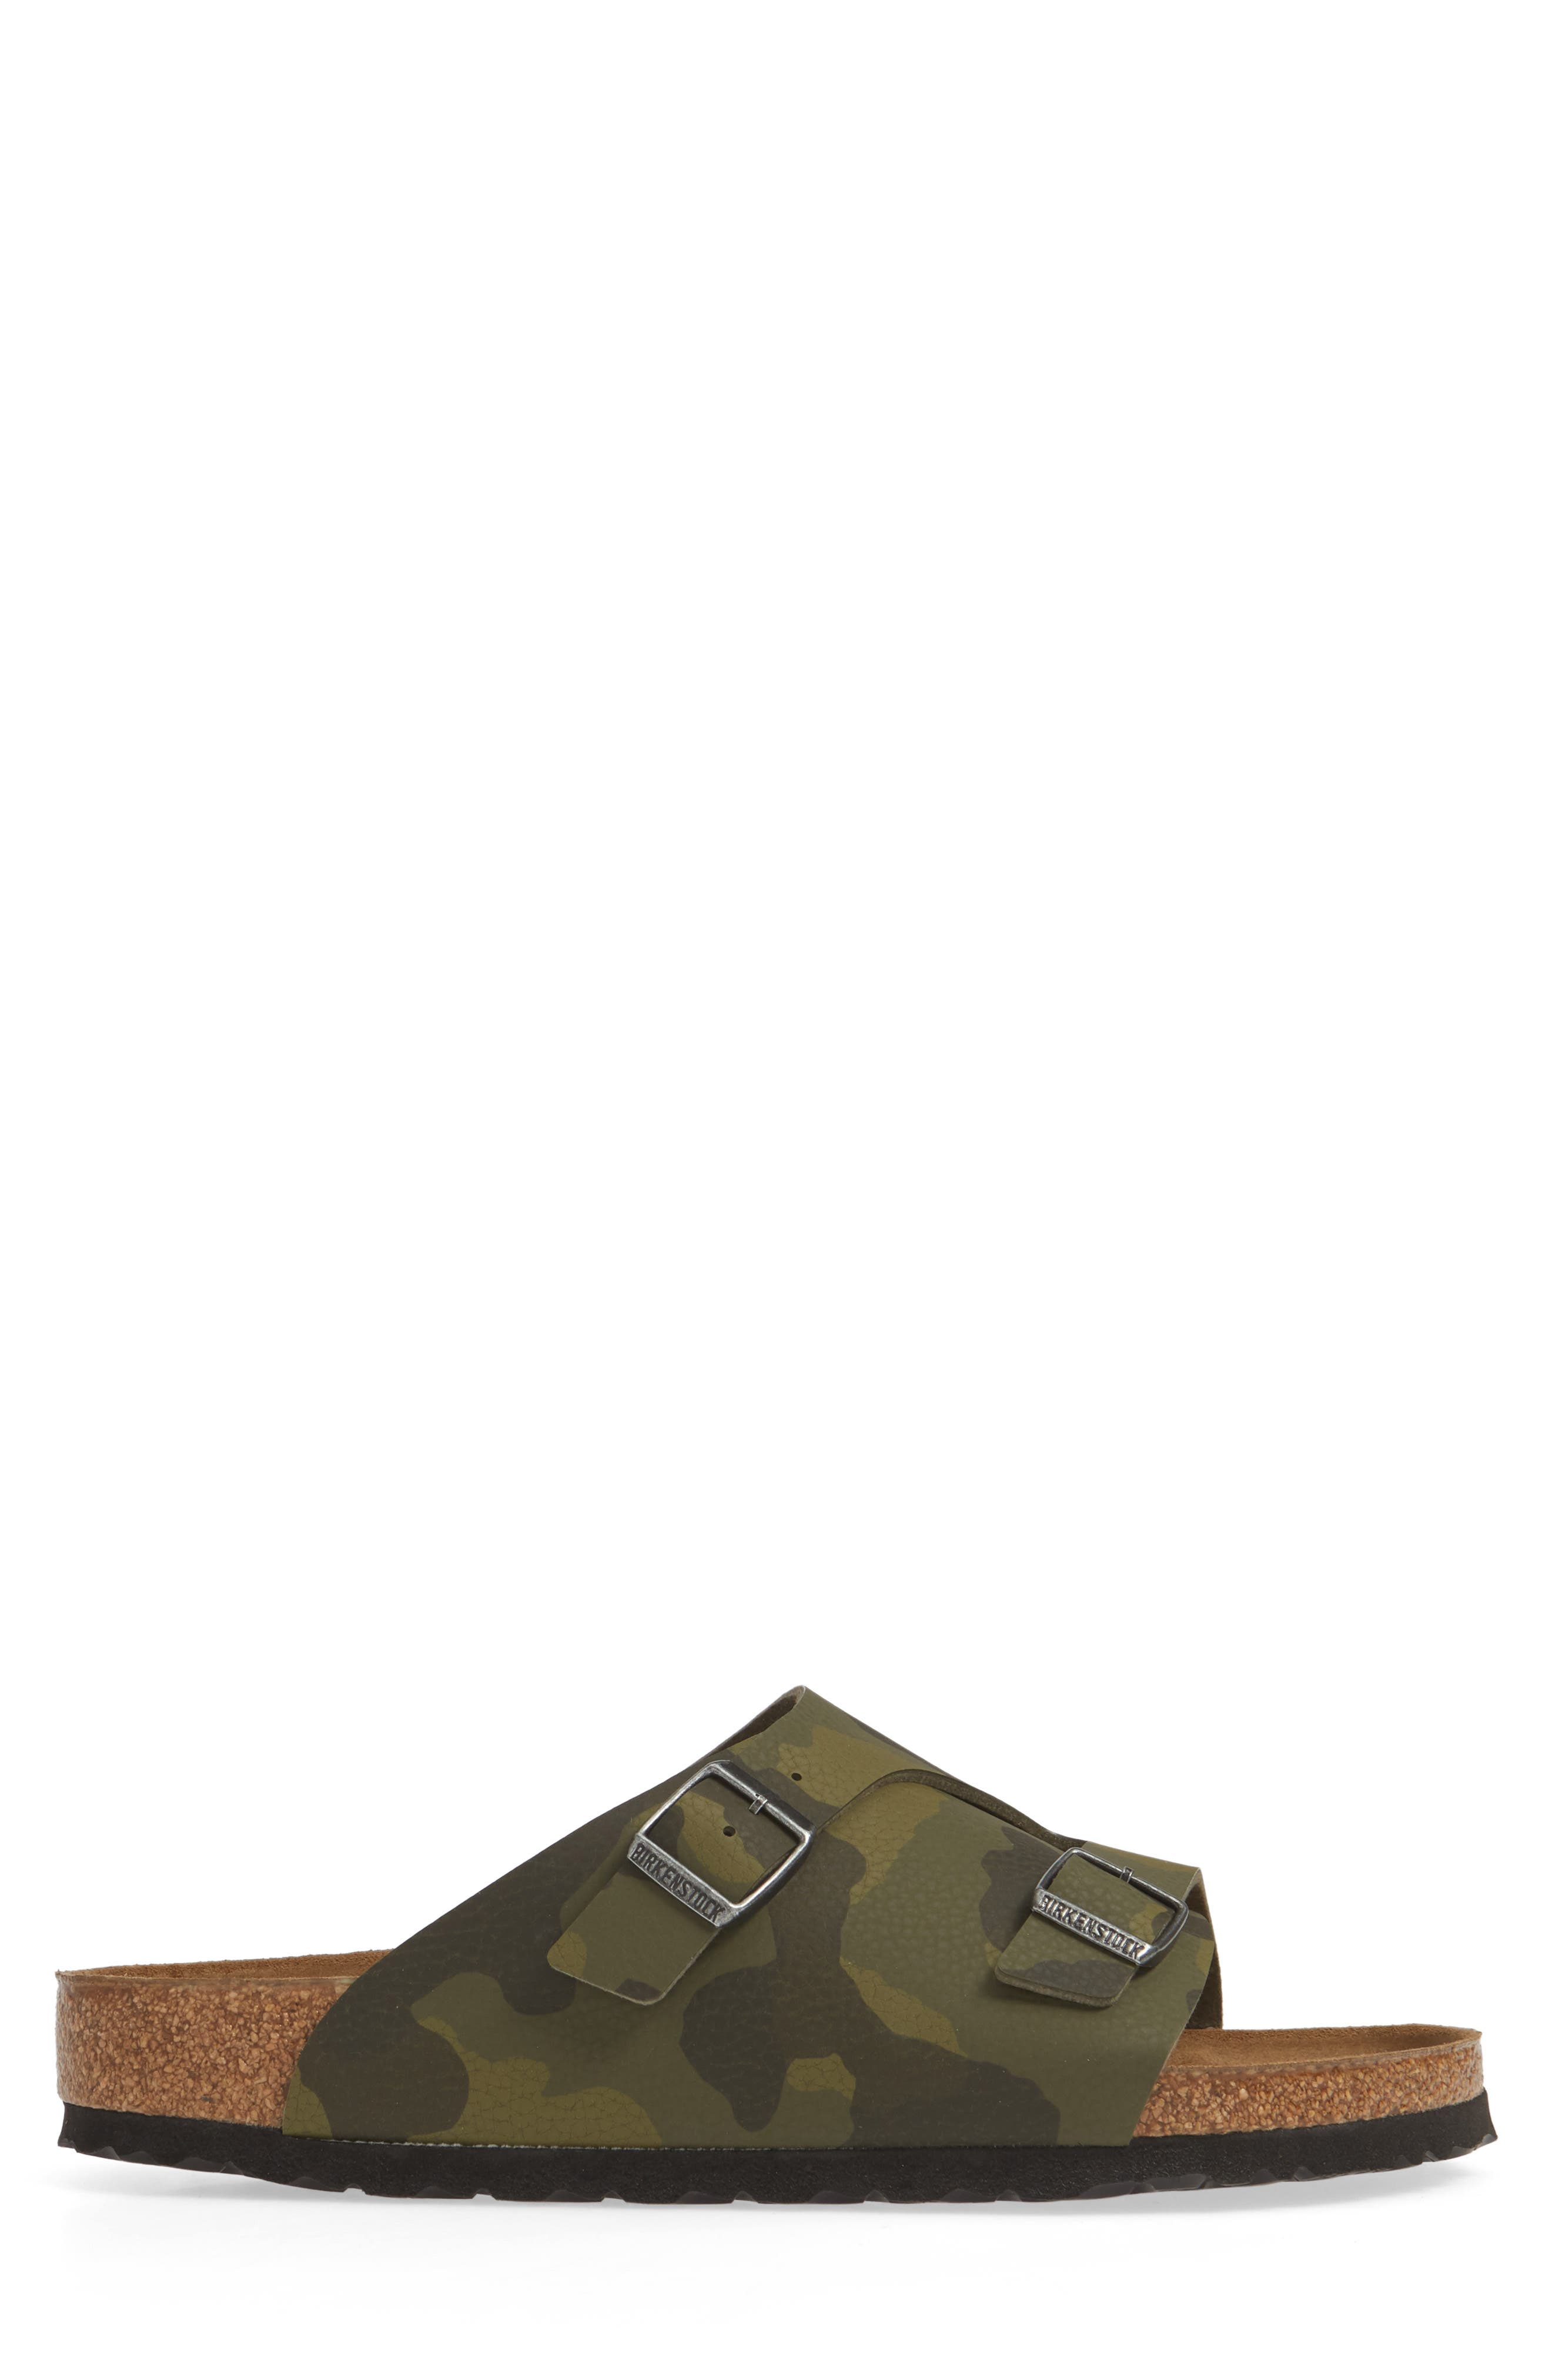 BIRKENSTOCK, Zurich Slide Sandal, Alternate thumbnail 3, color, DESERT CAMO GREEN